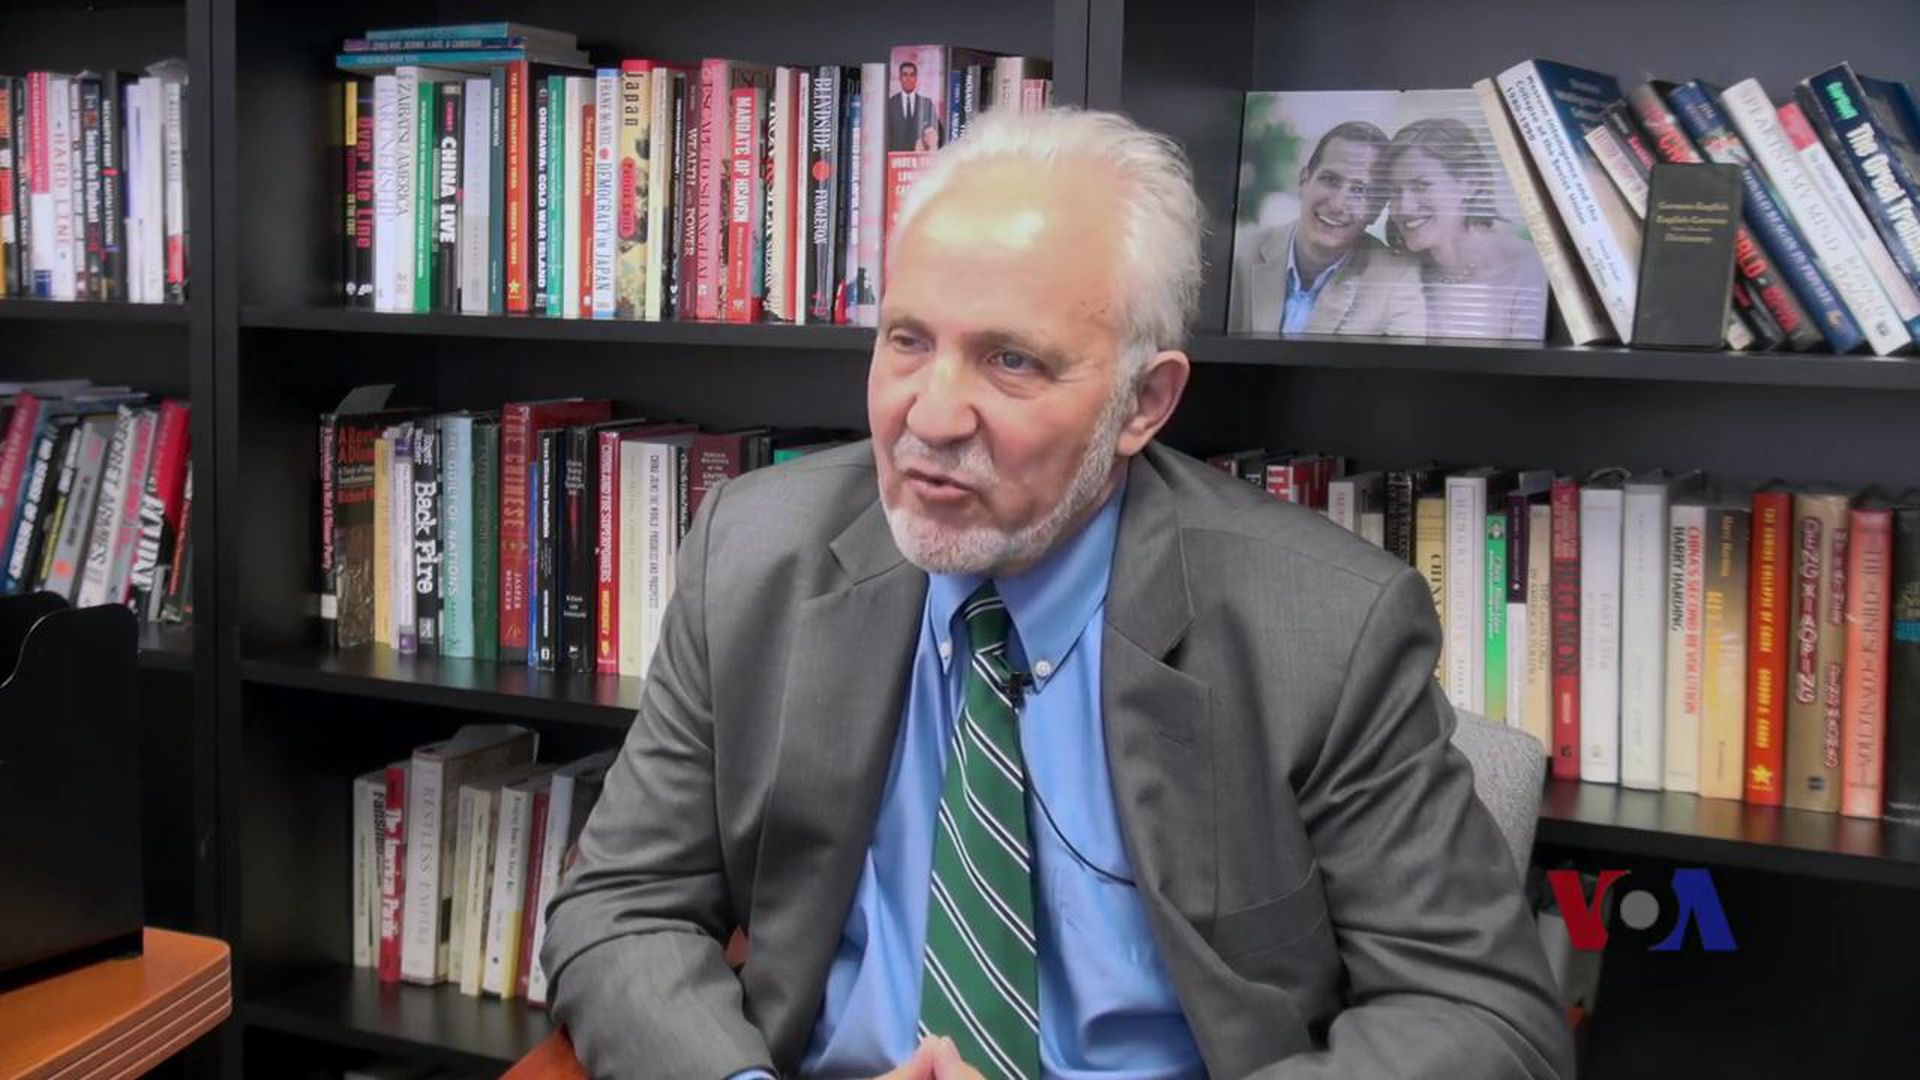 Photo of author James Mann in his office during interview with VOA